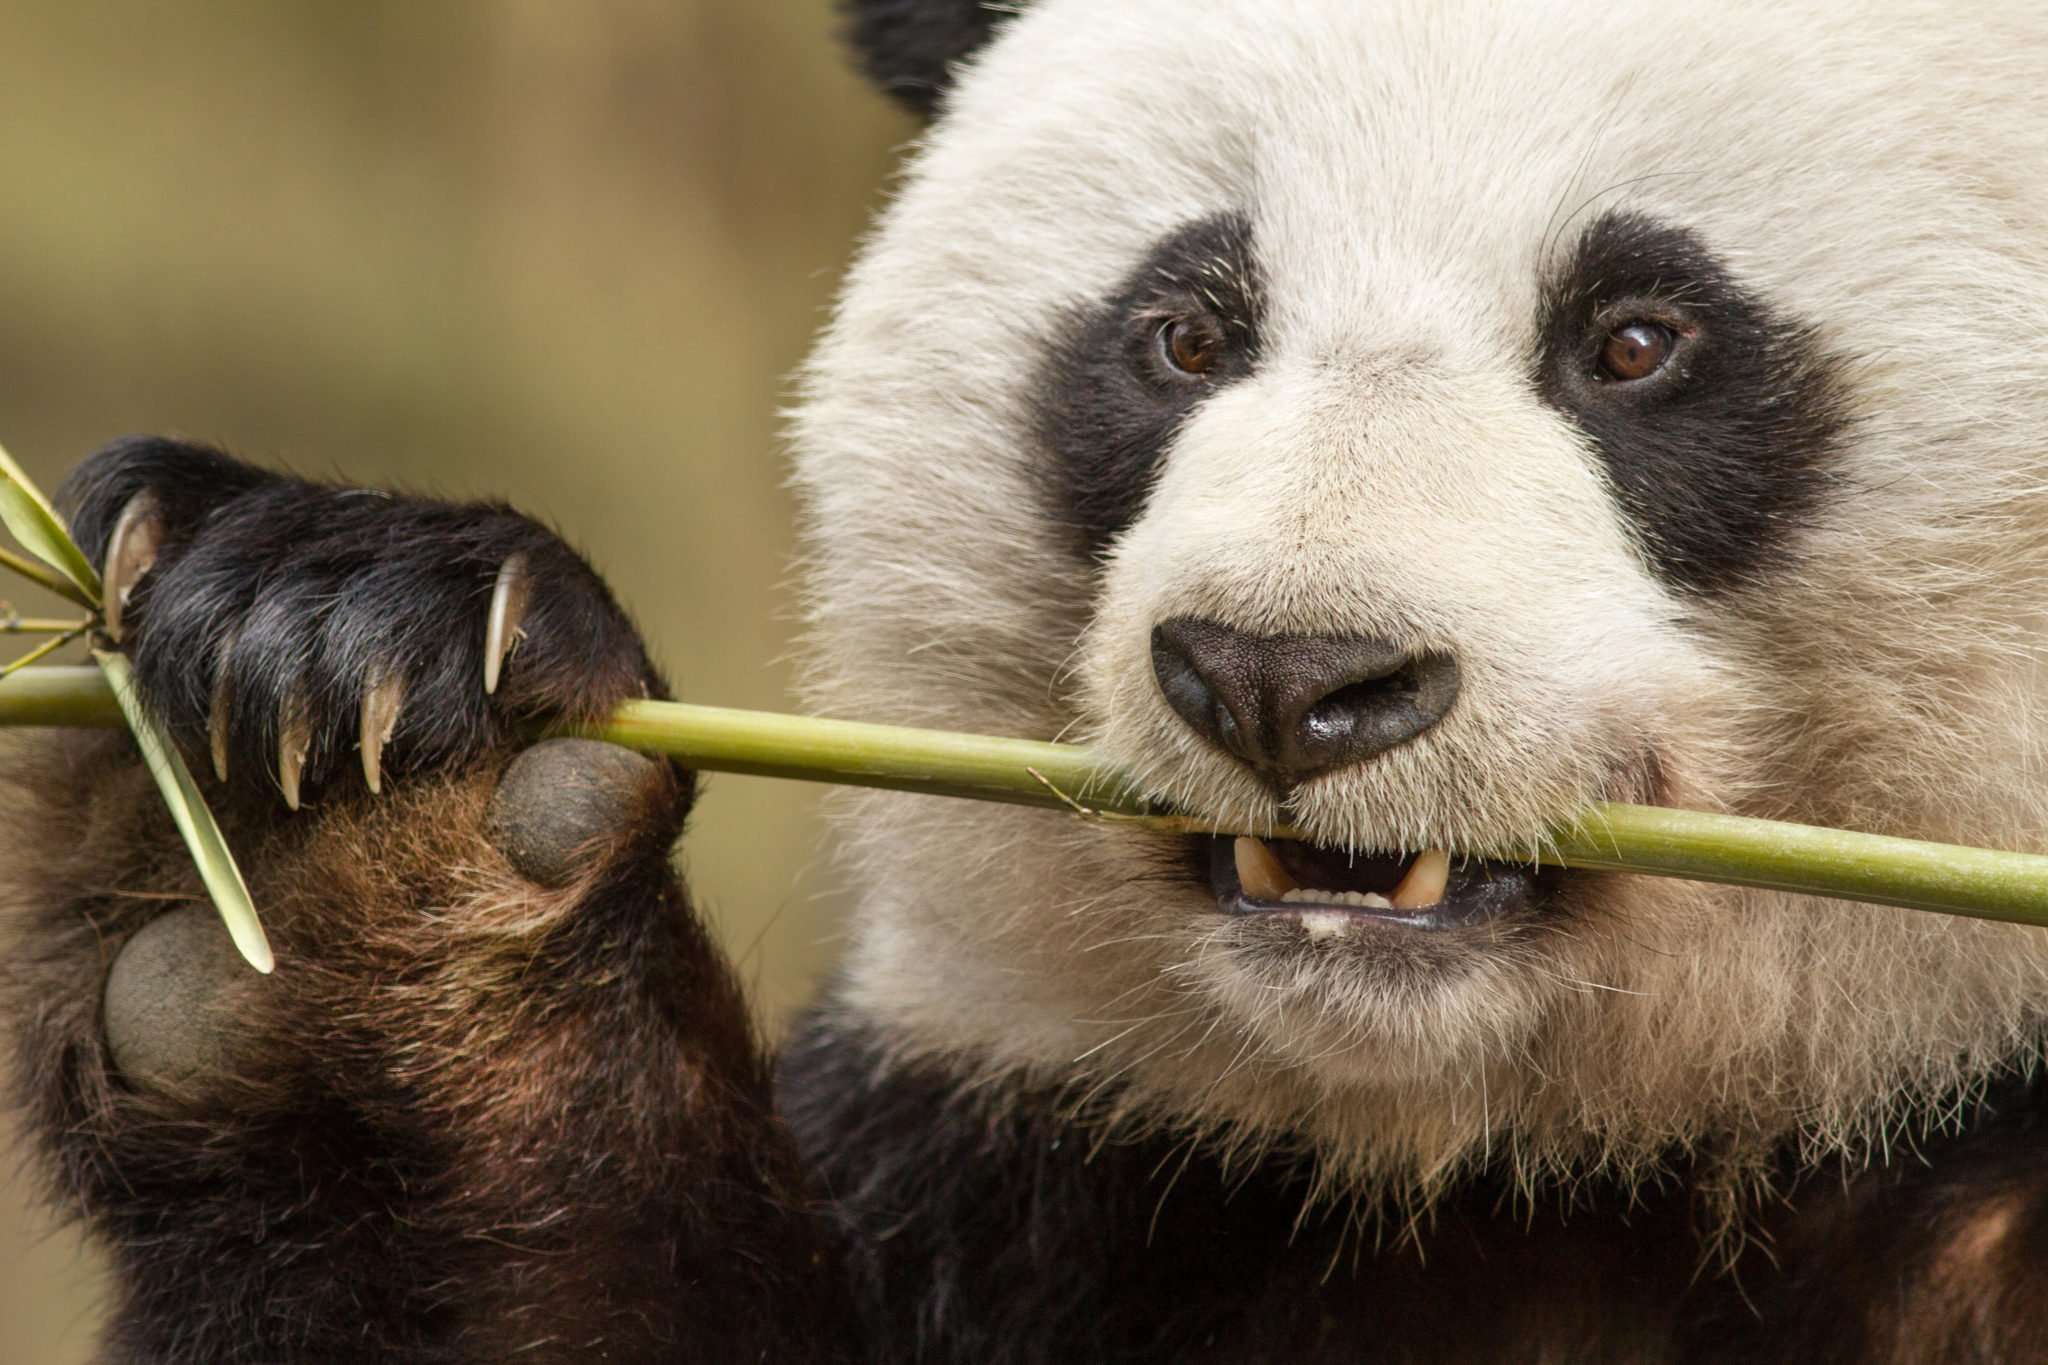 Born in China from Disneynature Opens on Earth Day